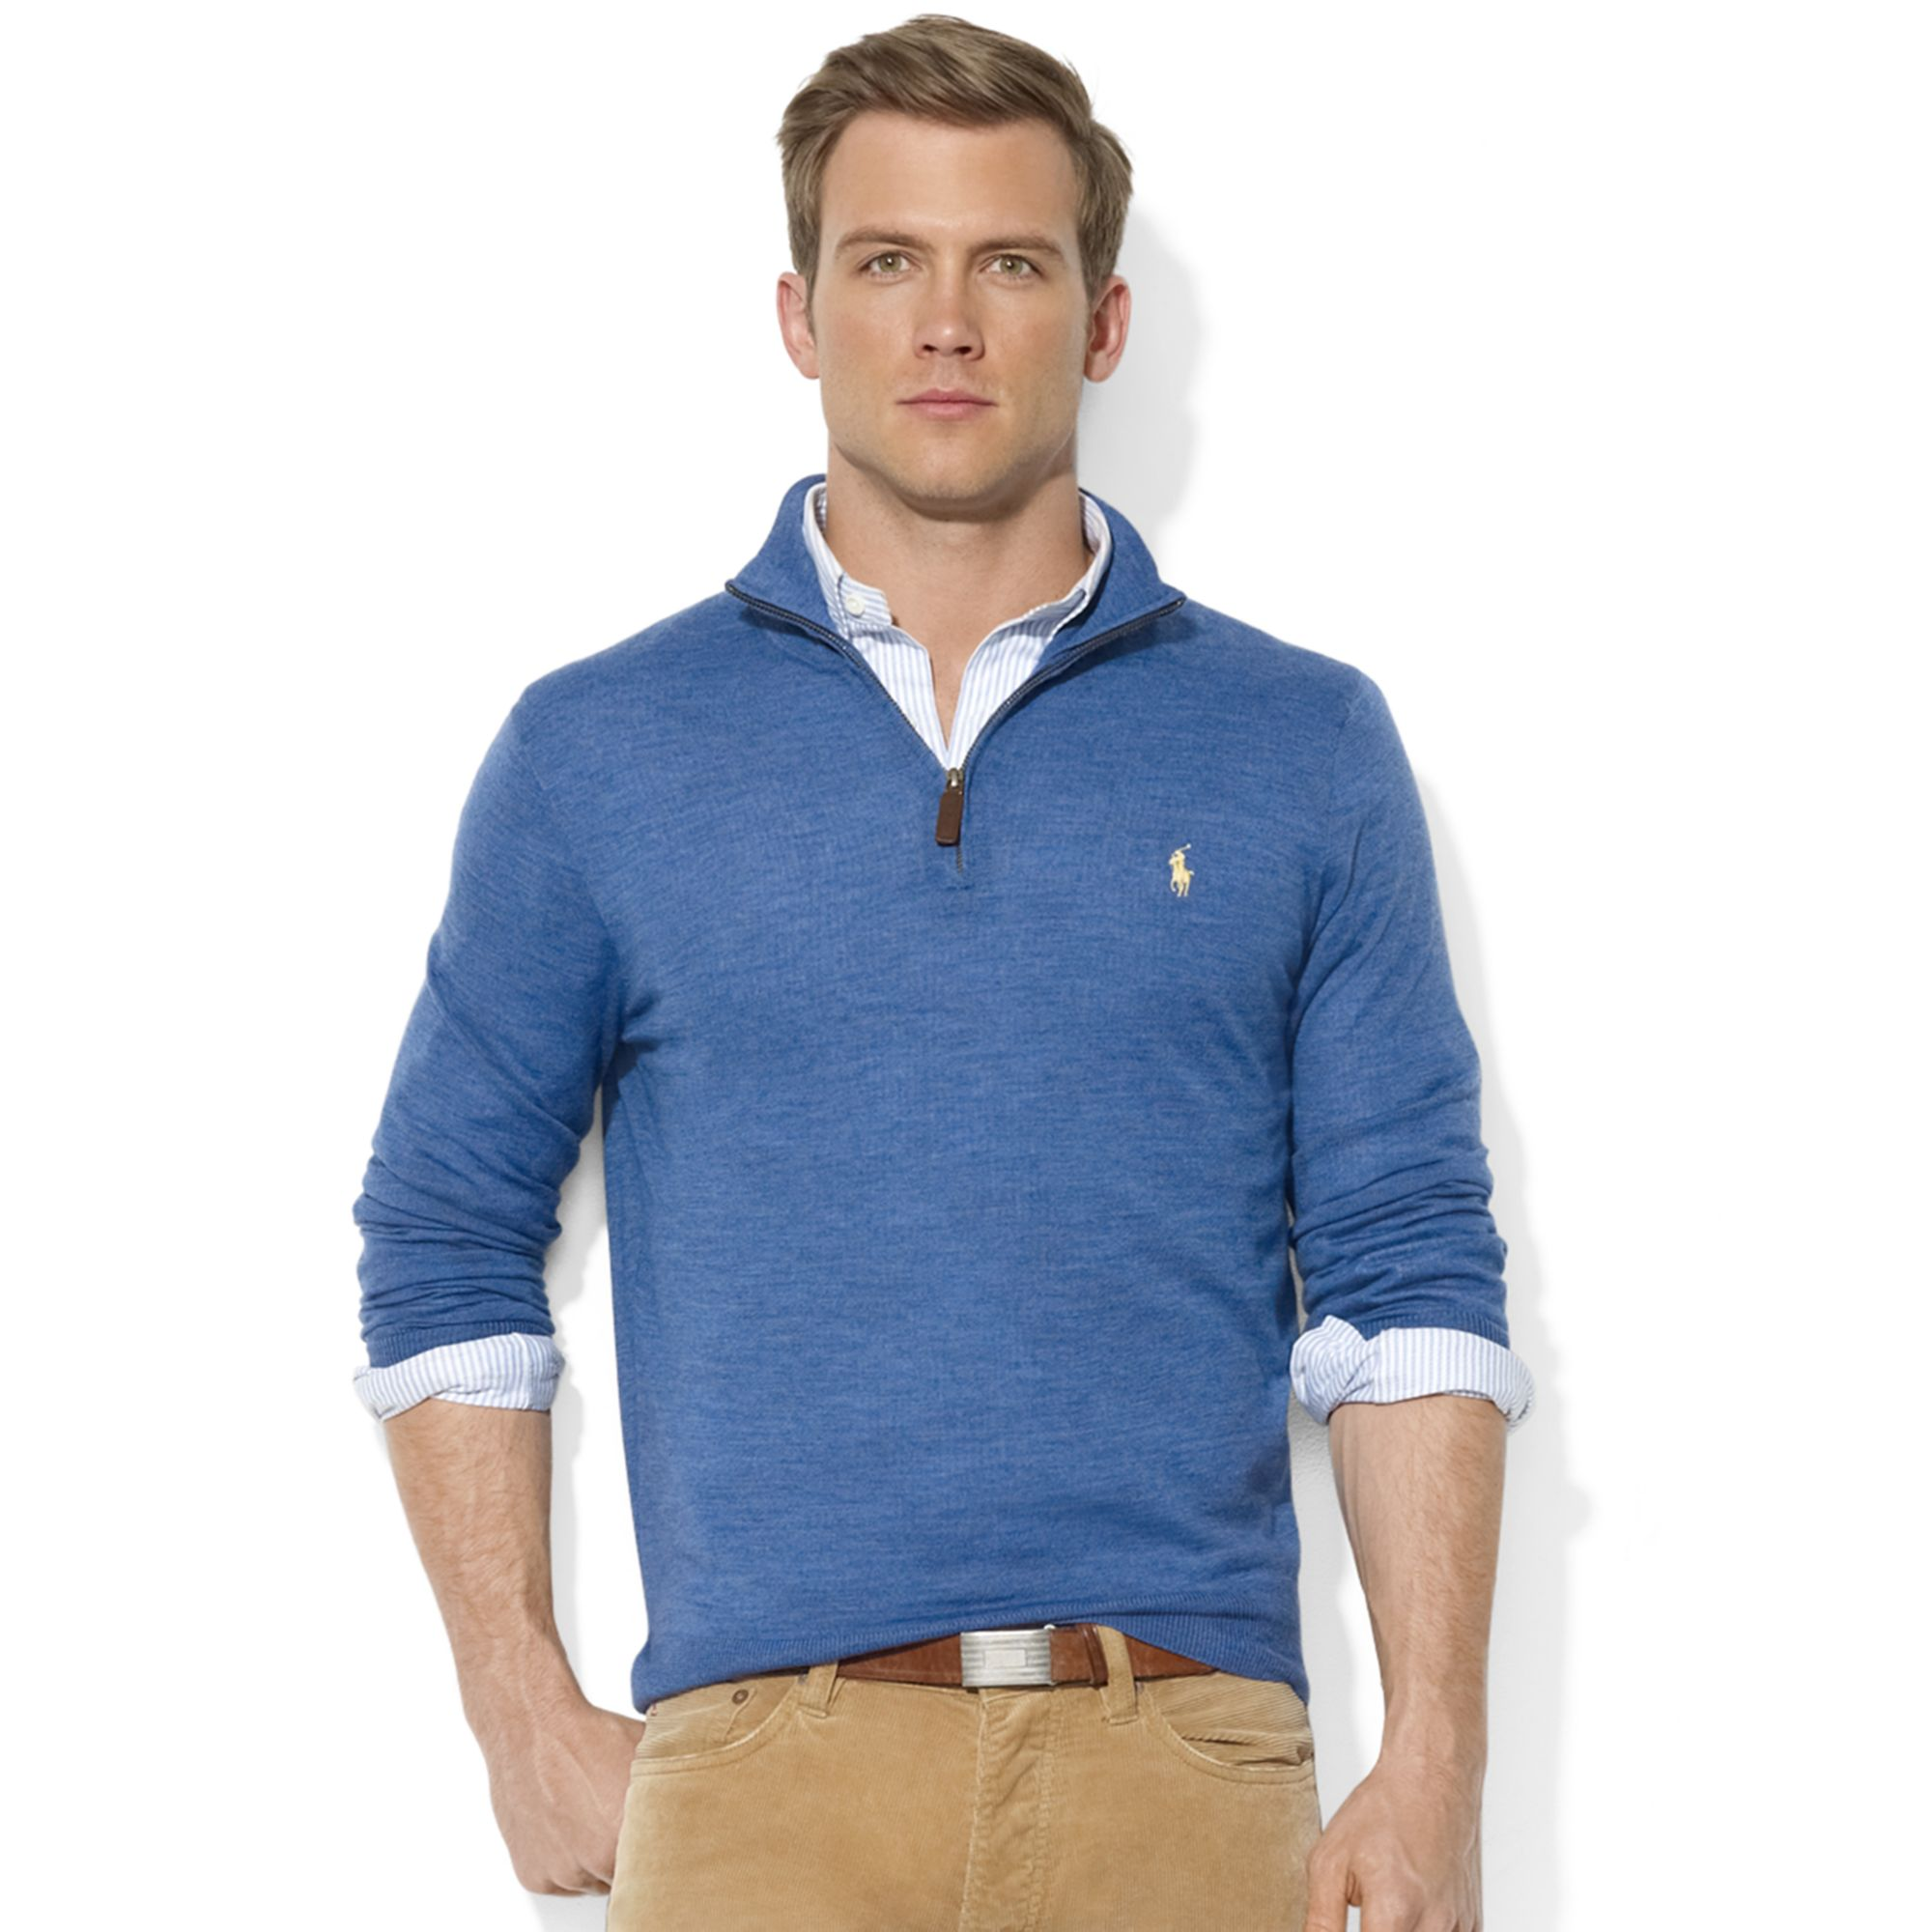 lyst ralph lauren polo ralph lauren sweater halfzip mock neck merino wool pullover in blue for men. Black Bedroom Furniture Sets. Home Design Ideas